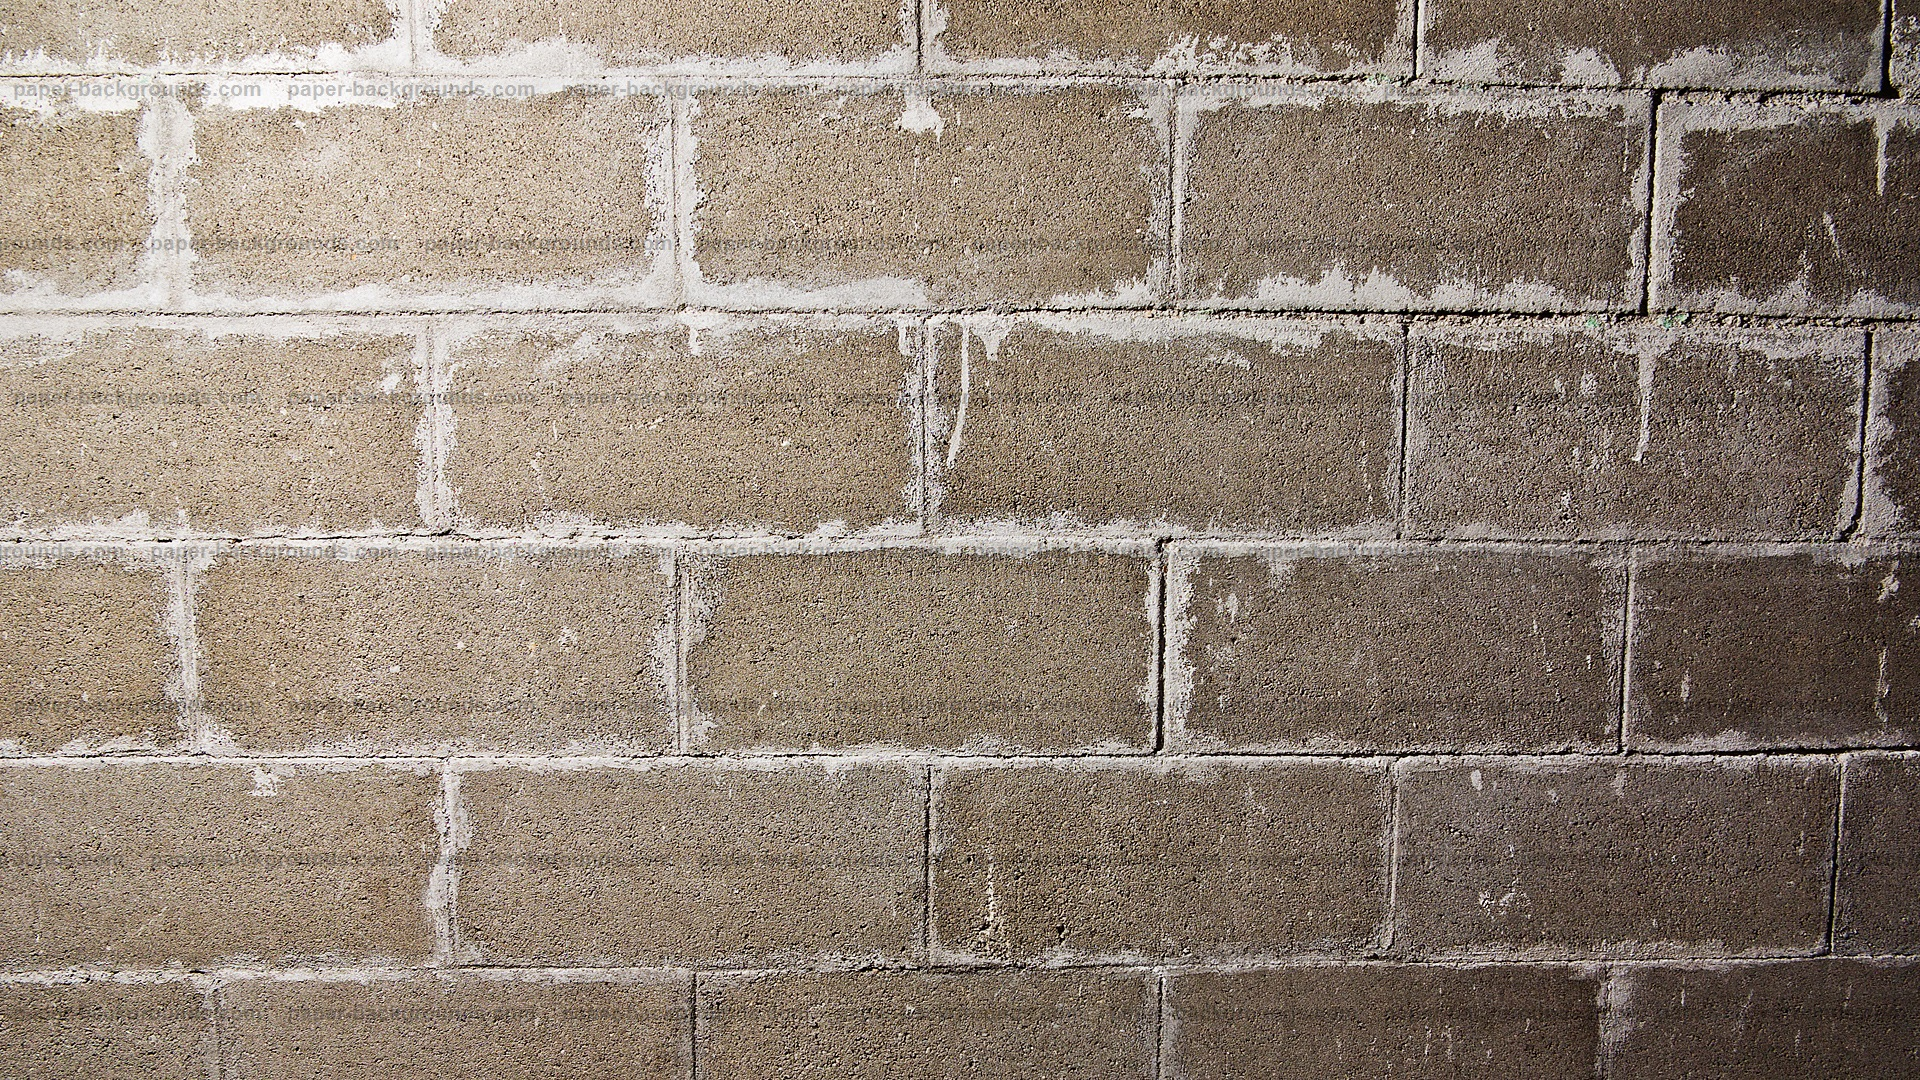 Vintage Concrete Brick Wall HD